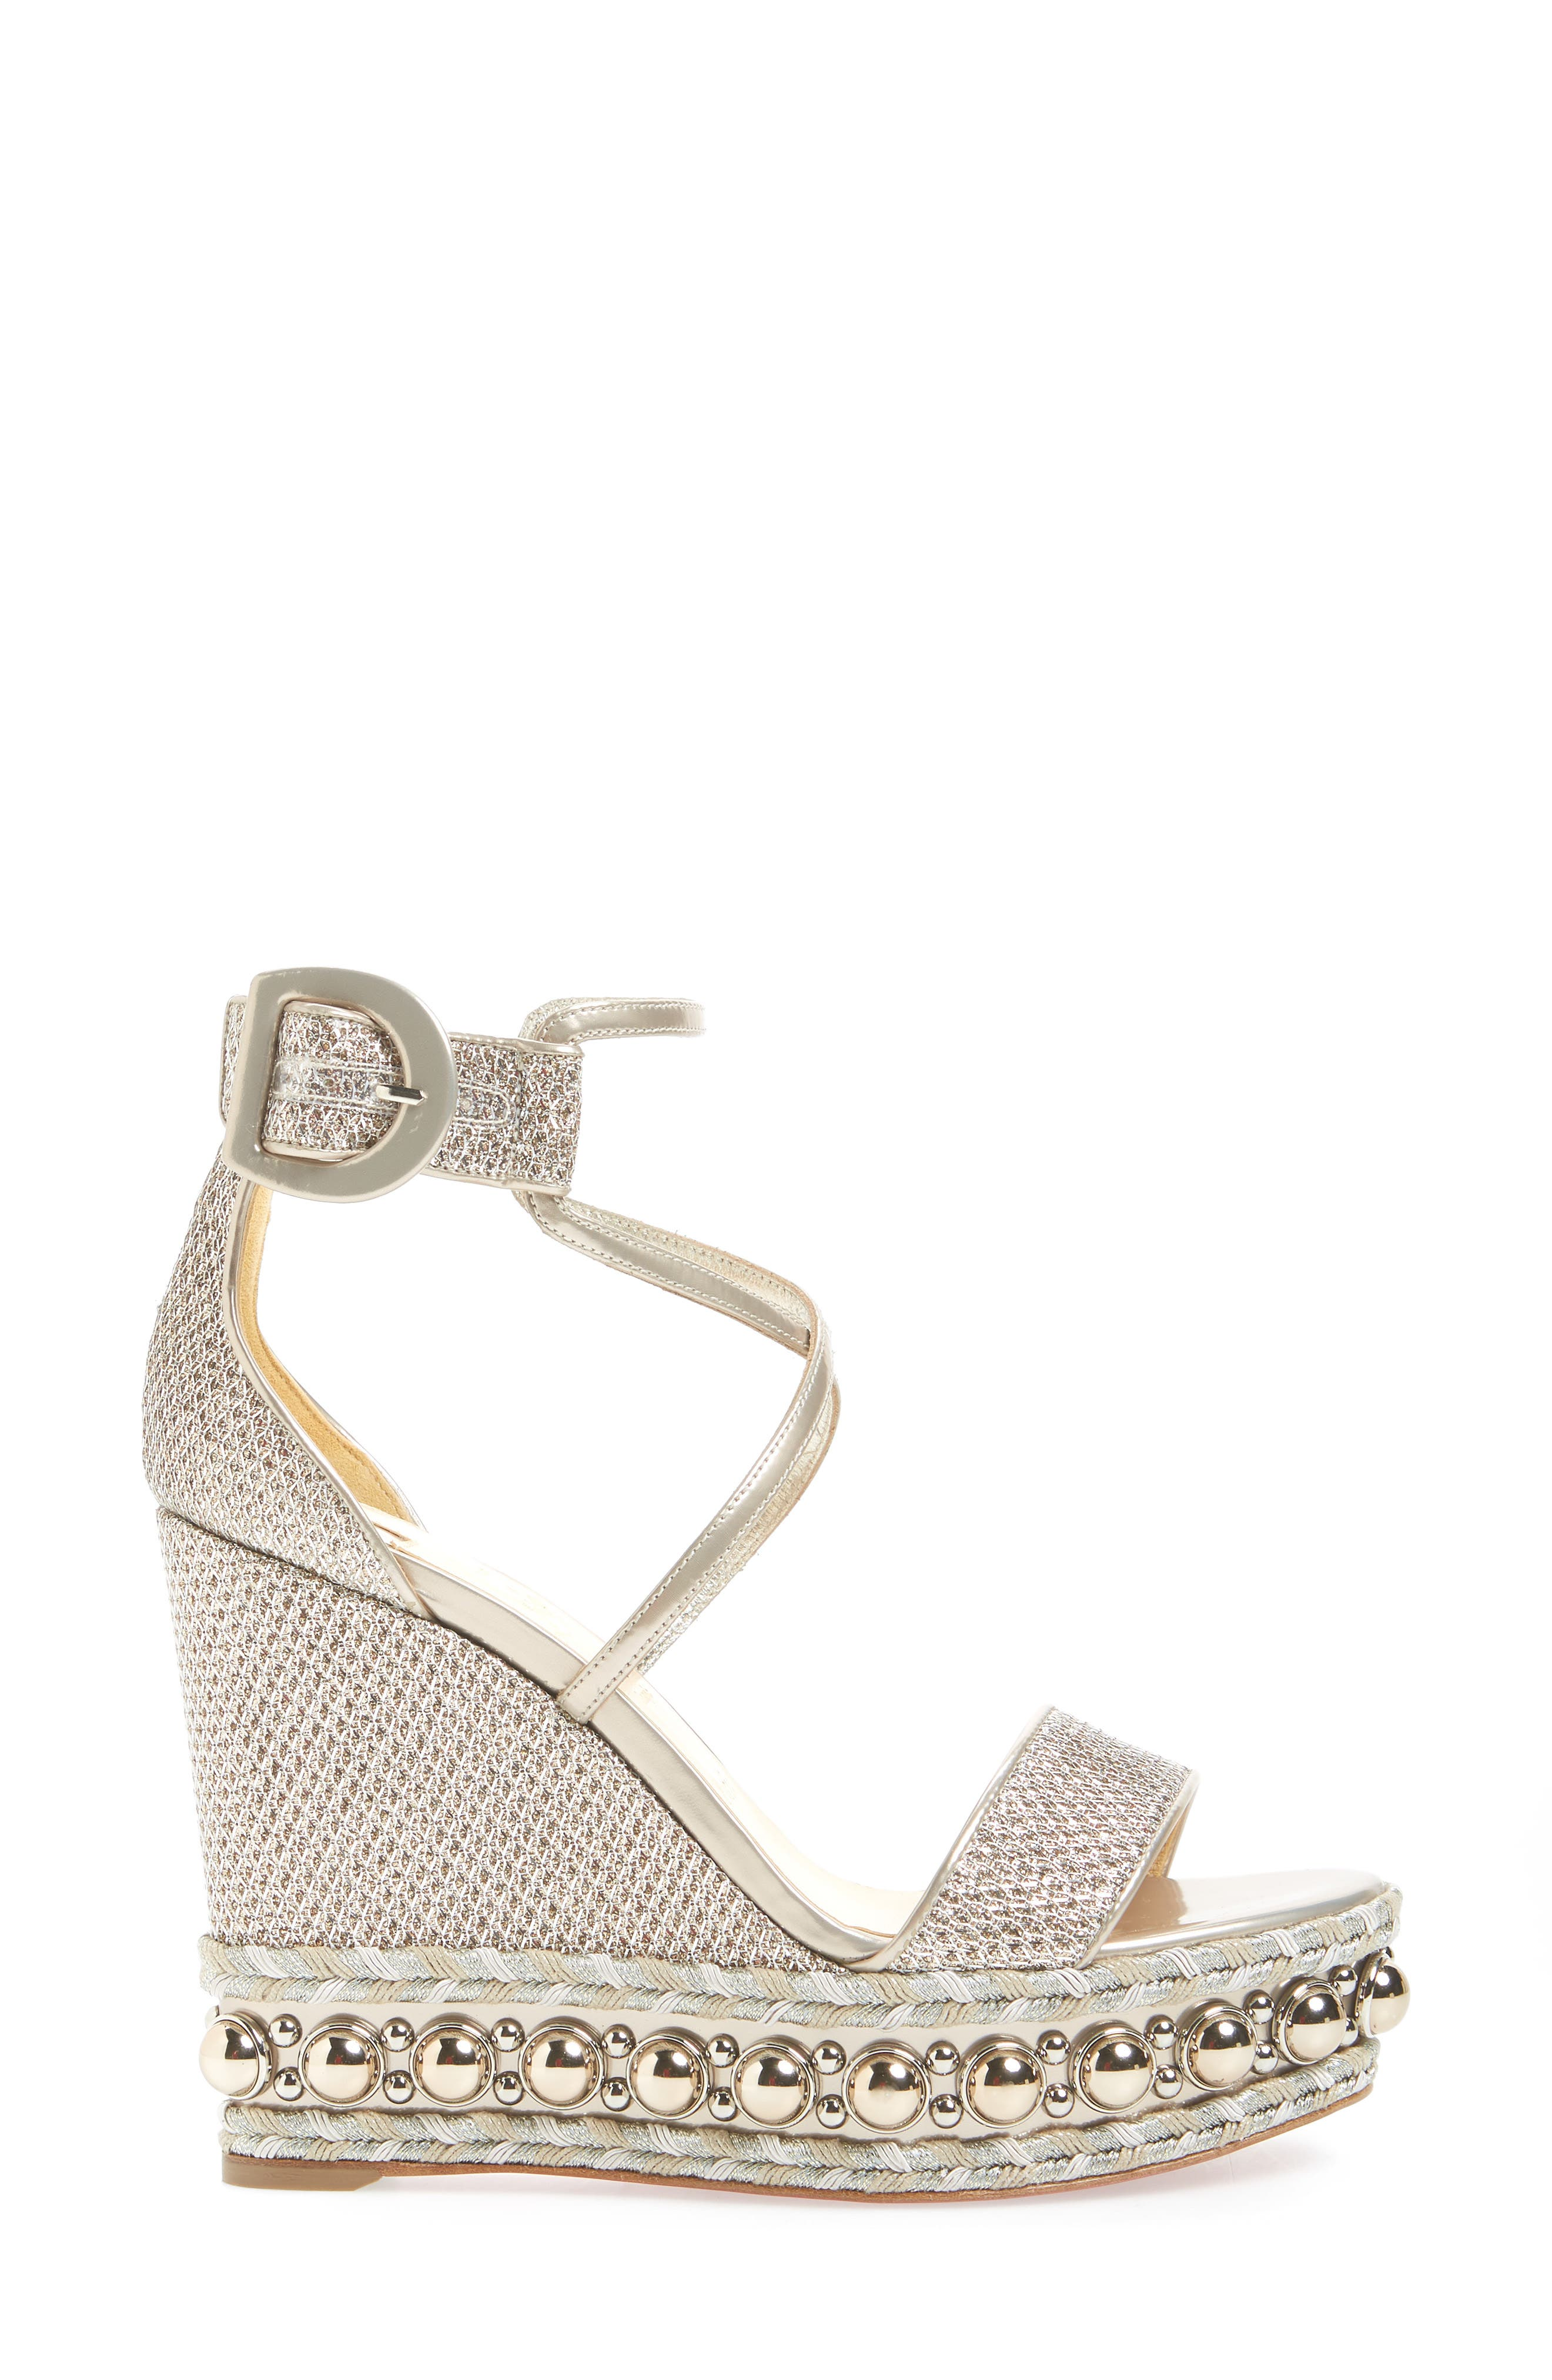 Chocazeppa Studded Wedge,                             Alternate thumbnail 3, color,                             COLOMBE